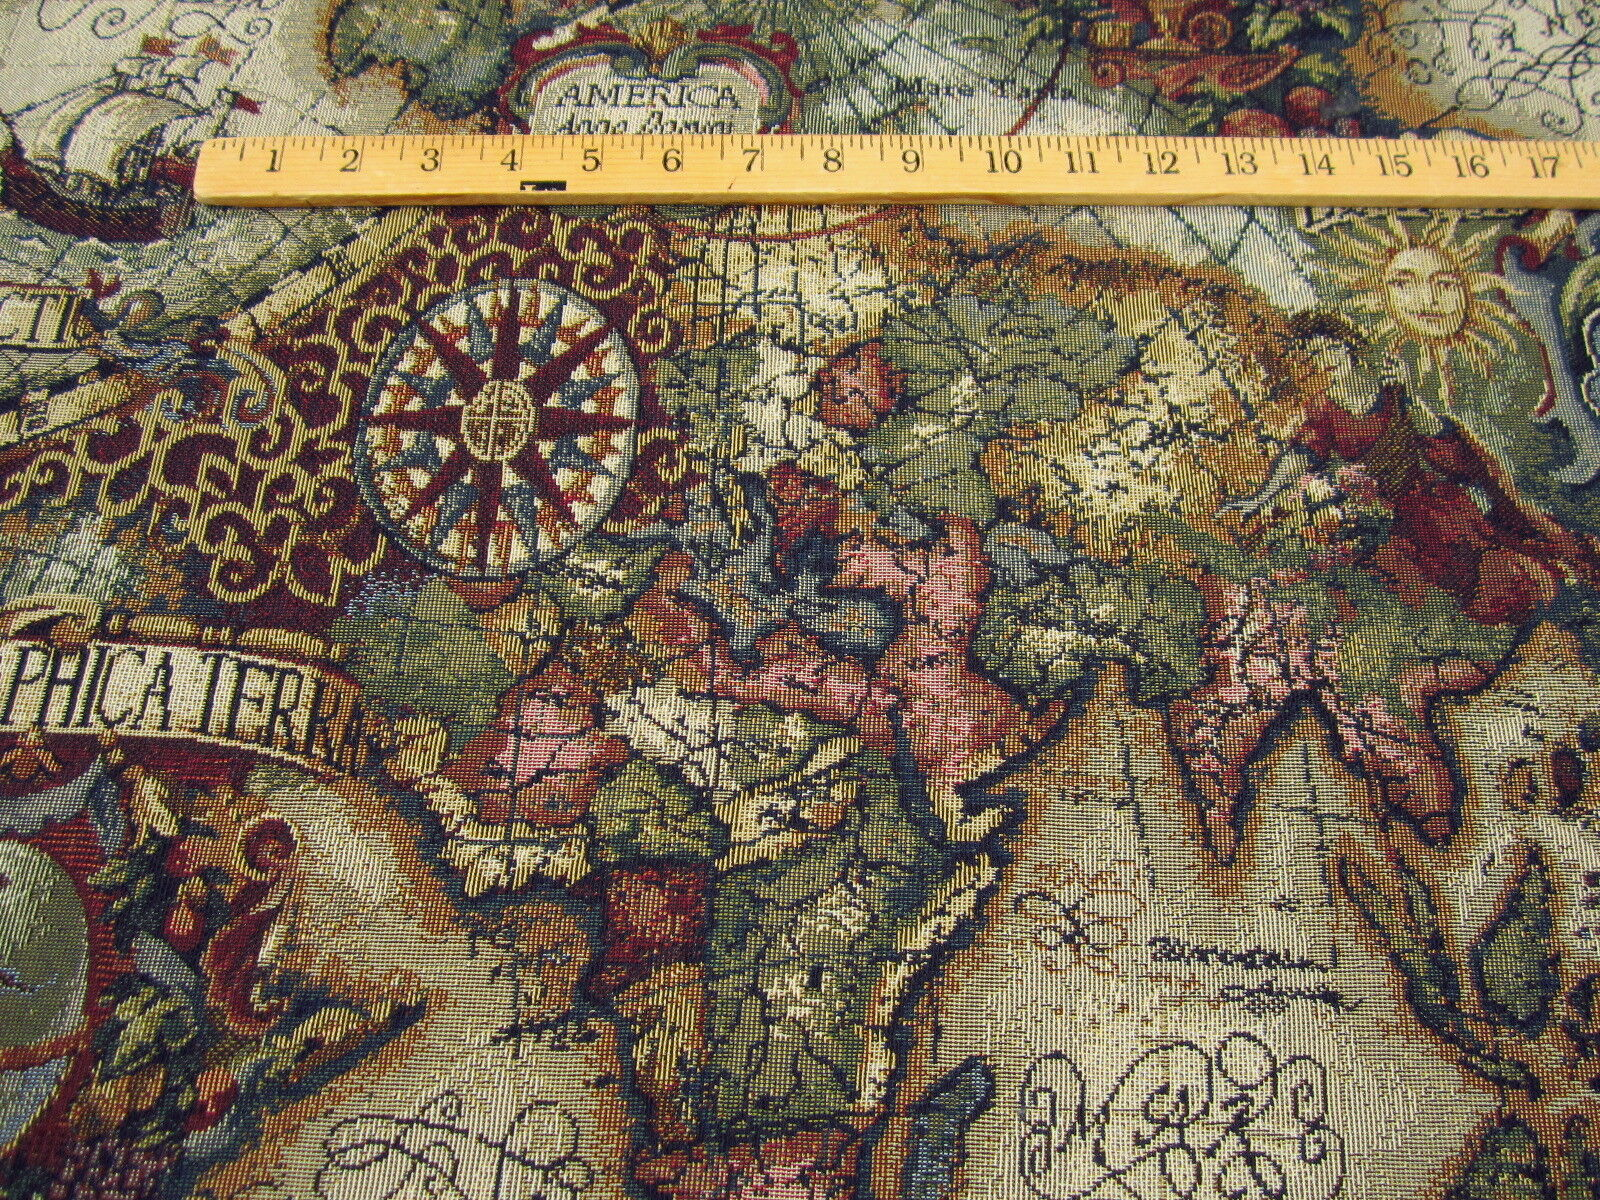 Magellan old world map tapestry upholstery fabric color jewel ft706 magellan old world map tapestry upholstery fabric color jewel ft706 gumiabroncs Choice Image